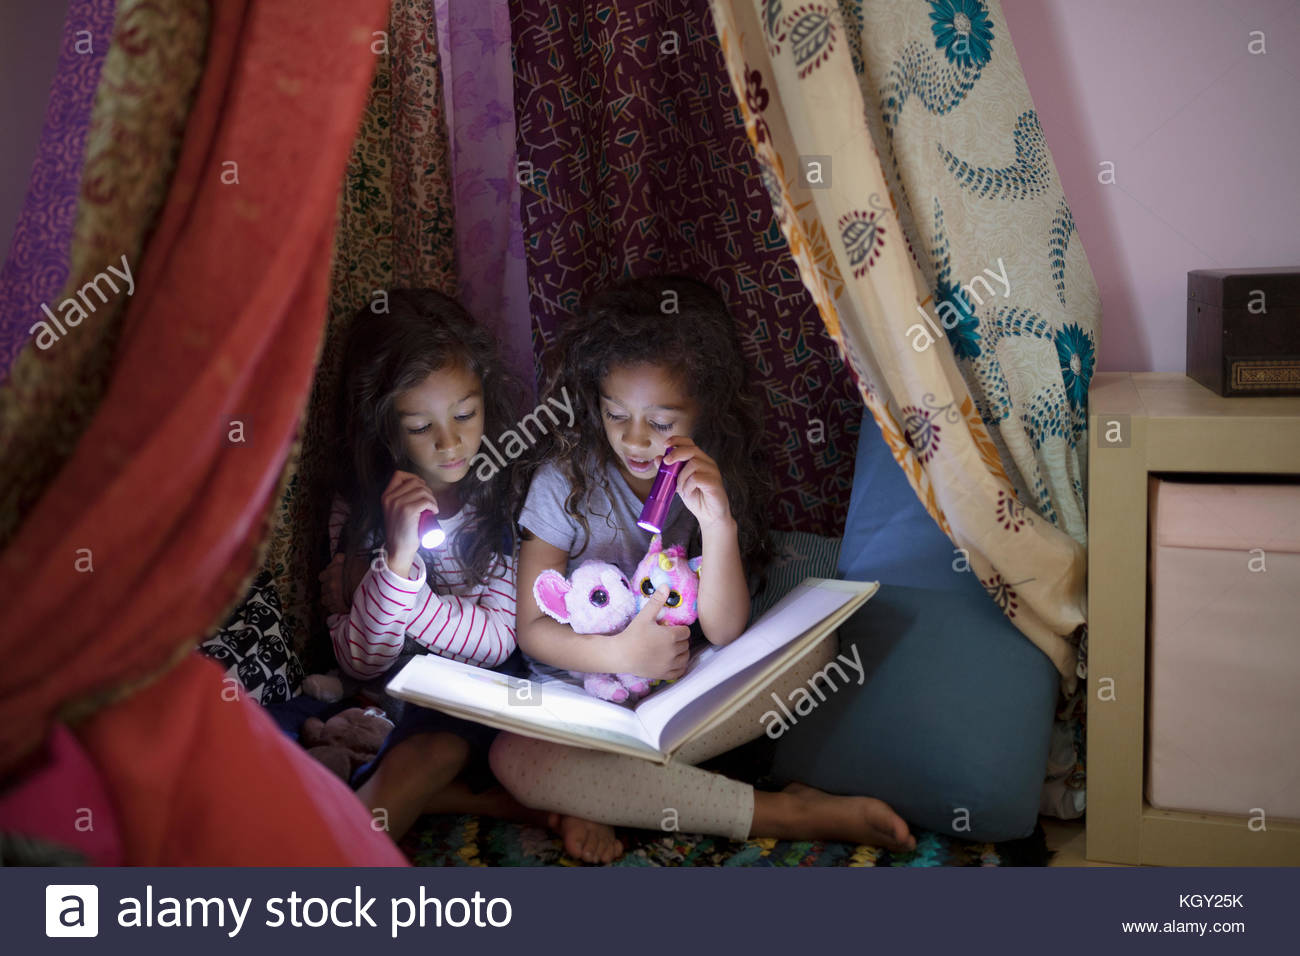 Girl sisters with flashlights reading bedtime story in tent at night - Stock Image